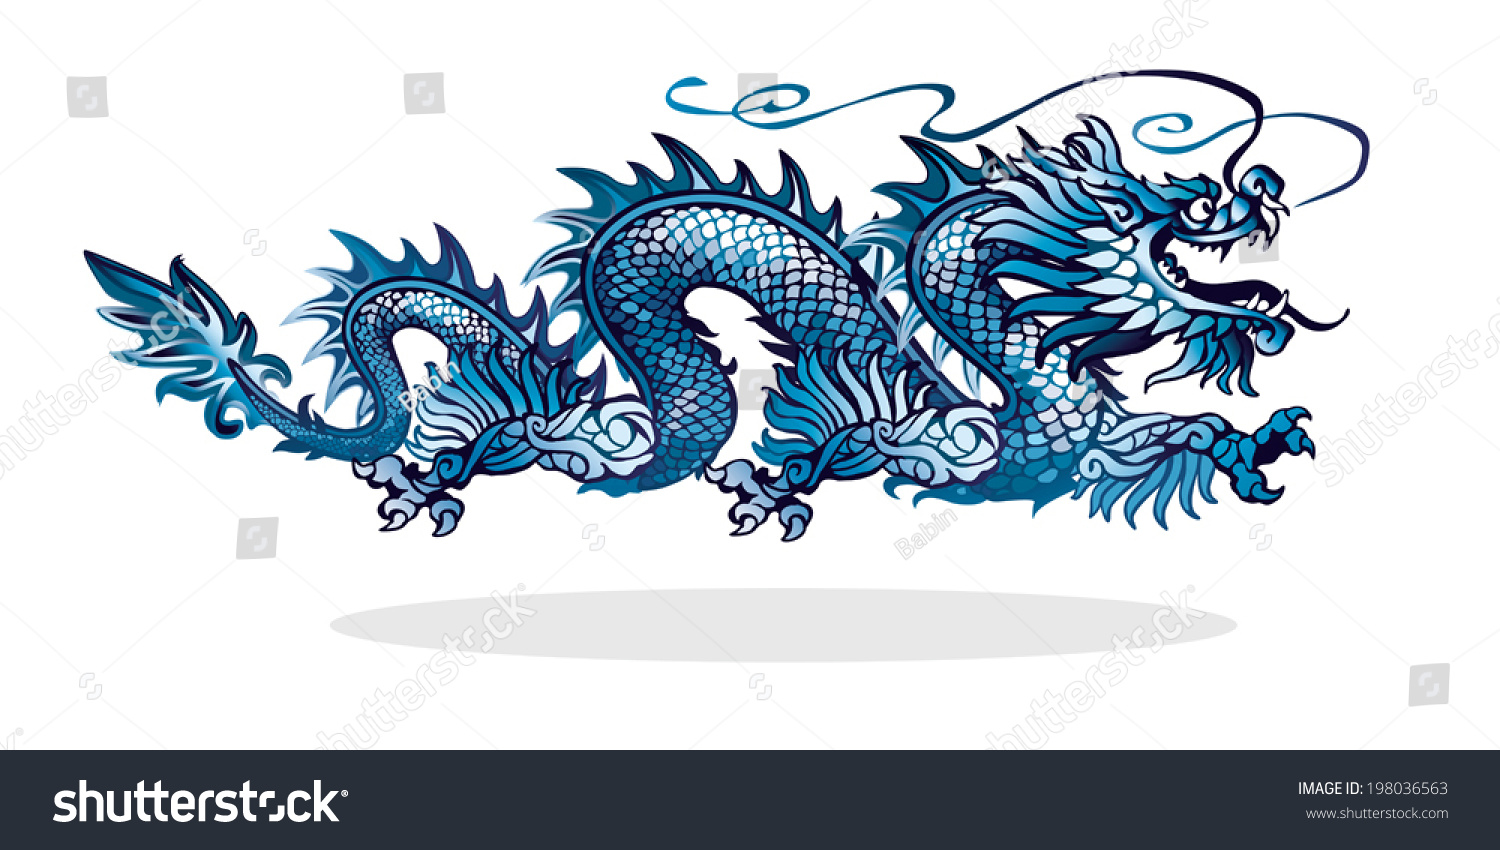 stock-vector-blue-chinese-dragon-on-white-background-198036563